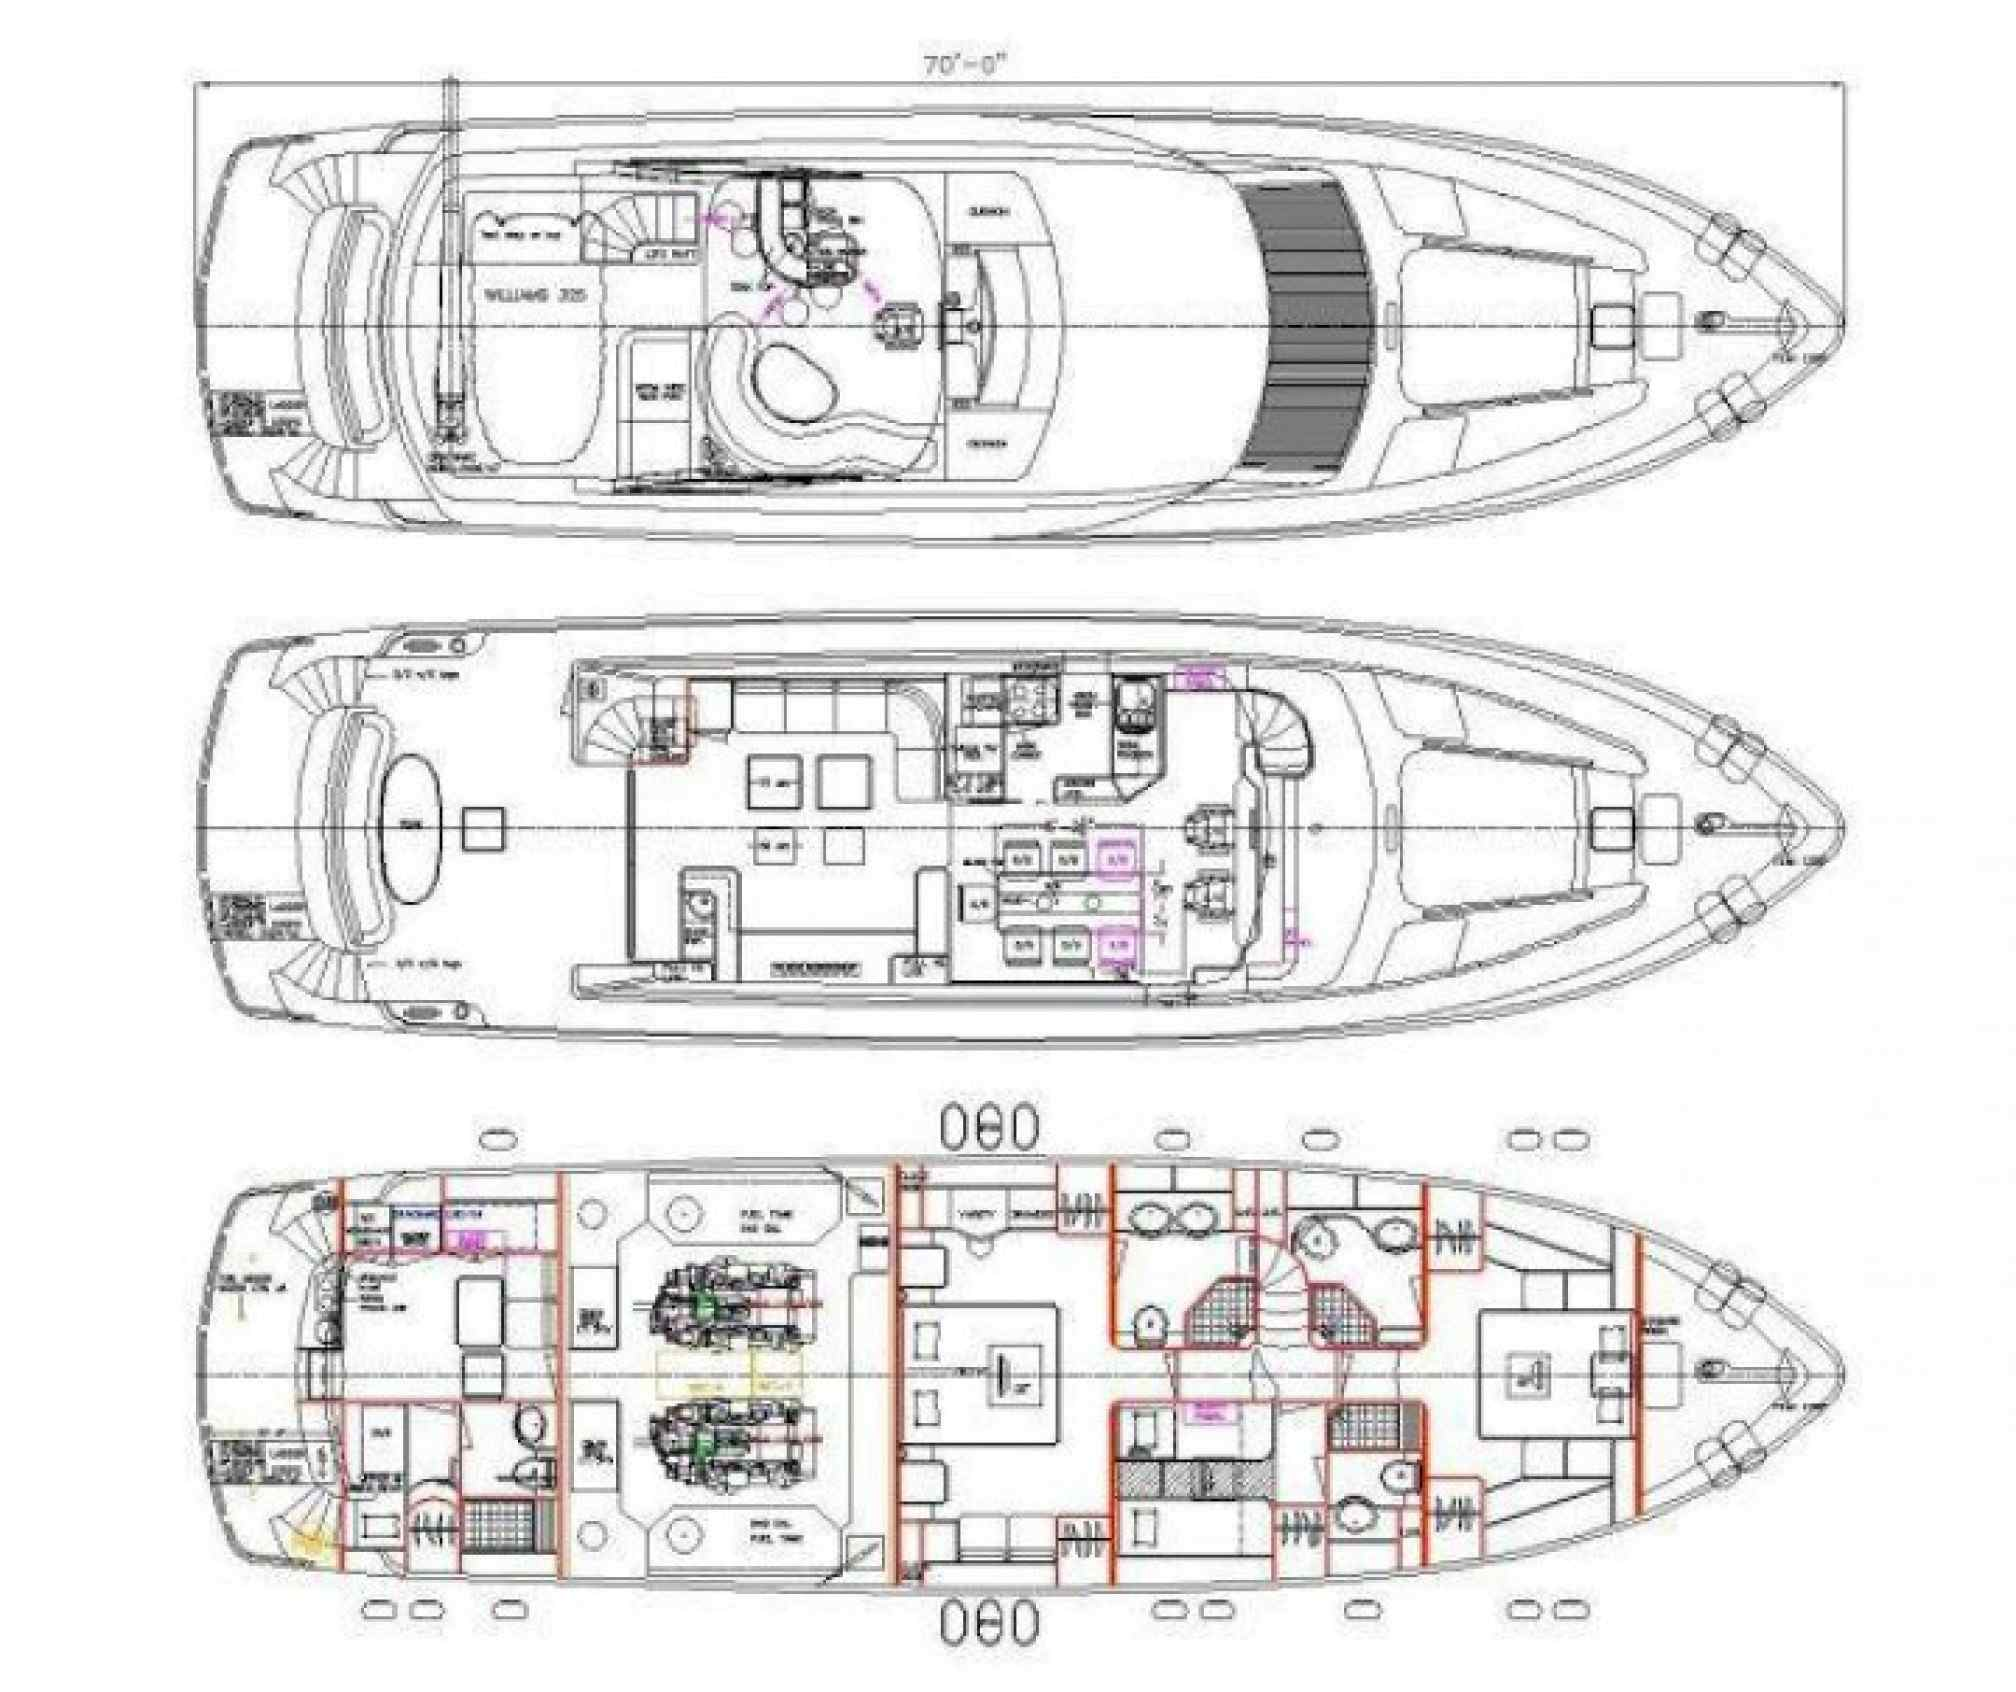 Elegance 70 yacht charter layout